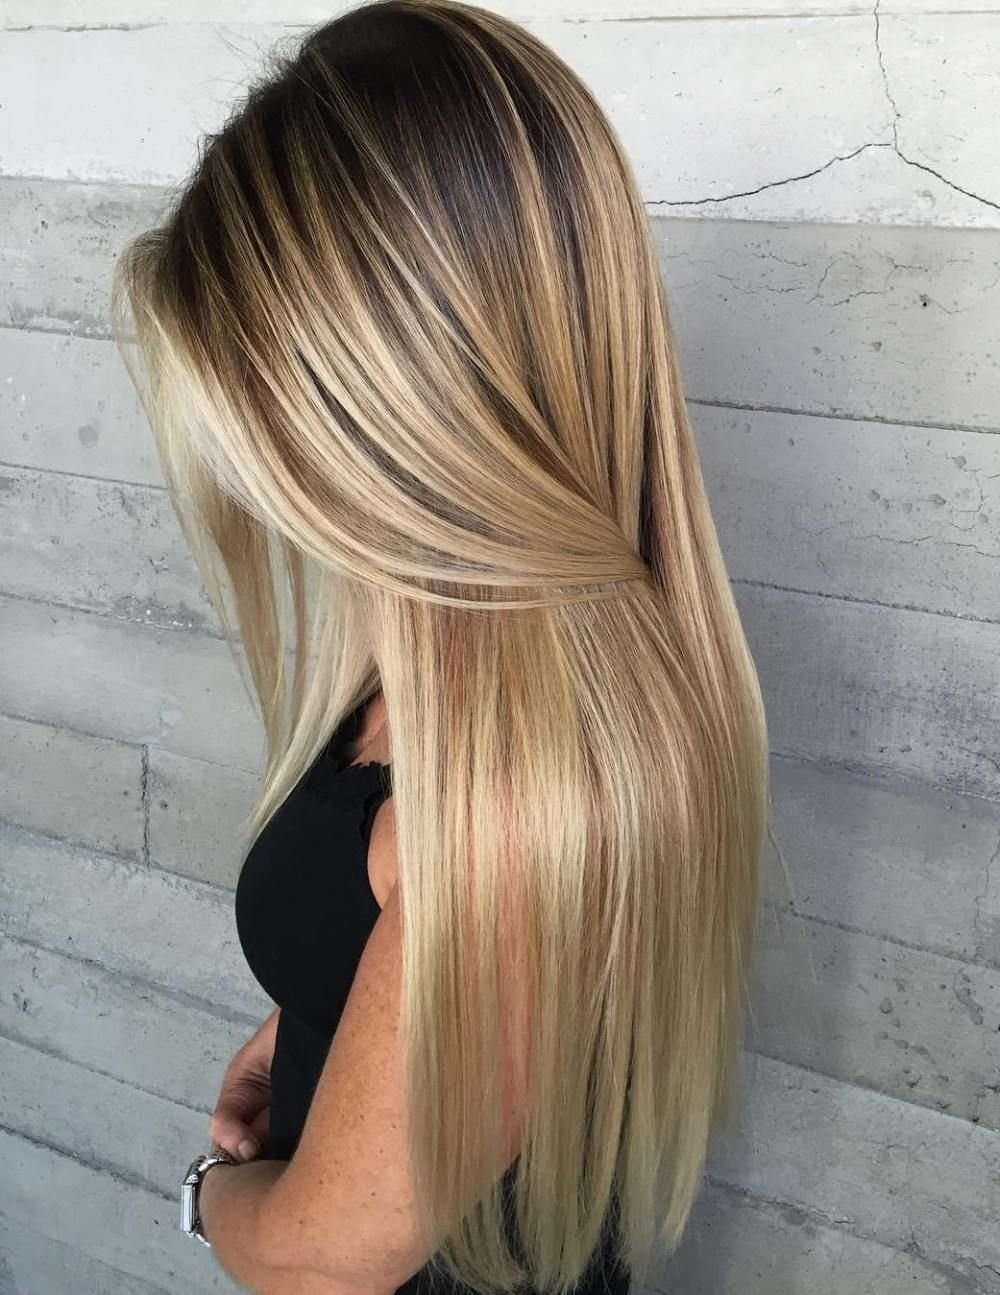 10 Amazing Different Blonde Hair Color Ideas 70 flattering balayage hair color ideas for 2018 blonde balayage 2020